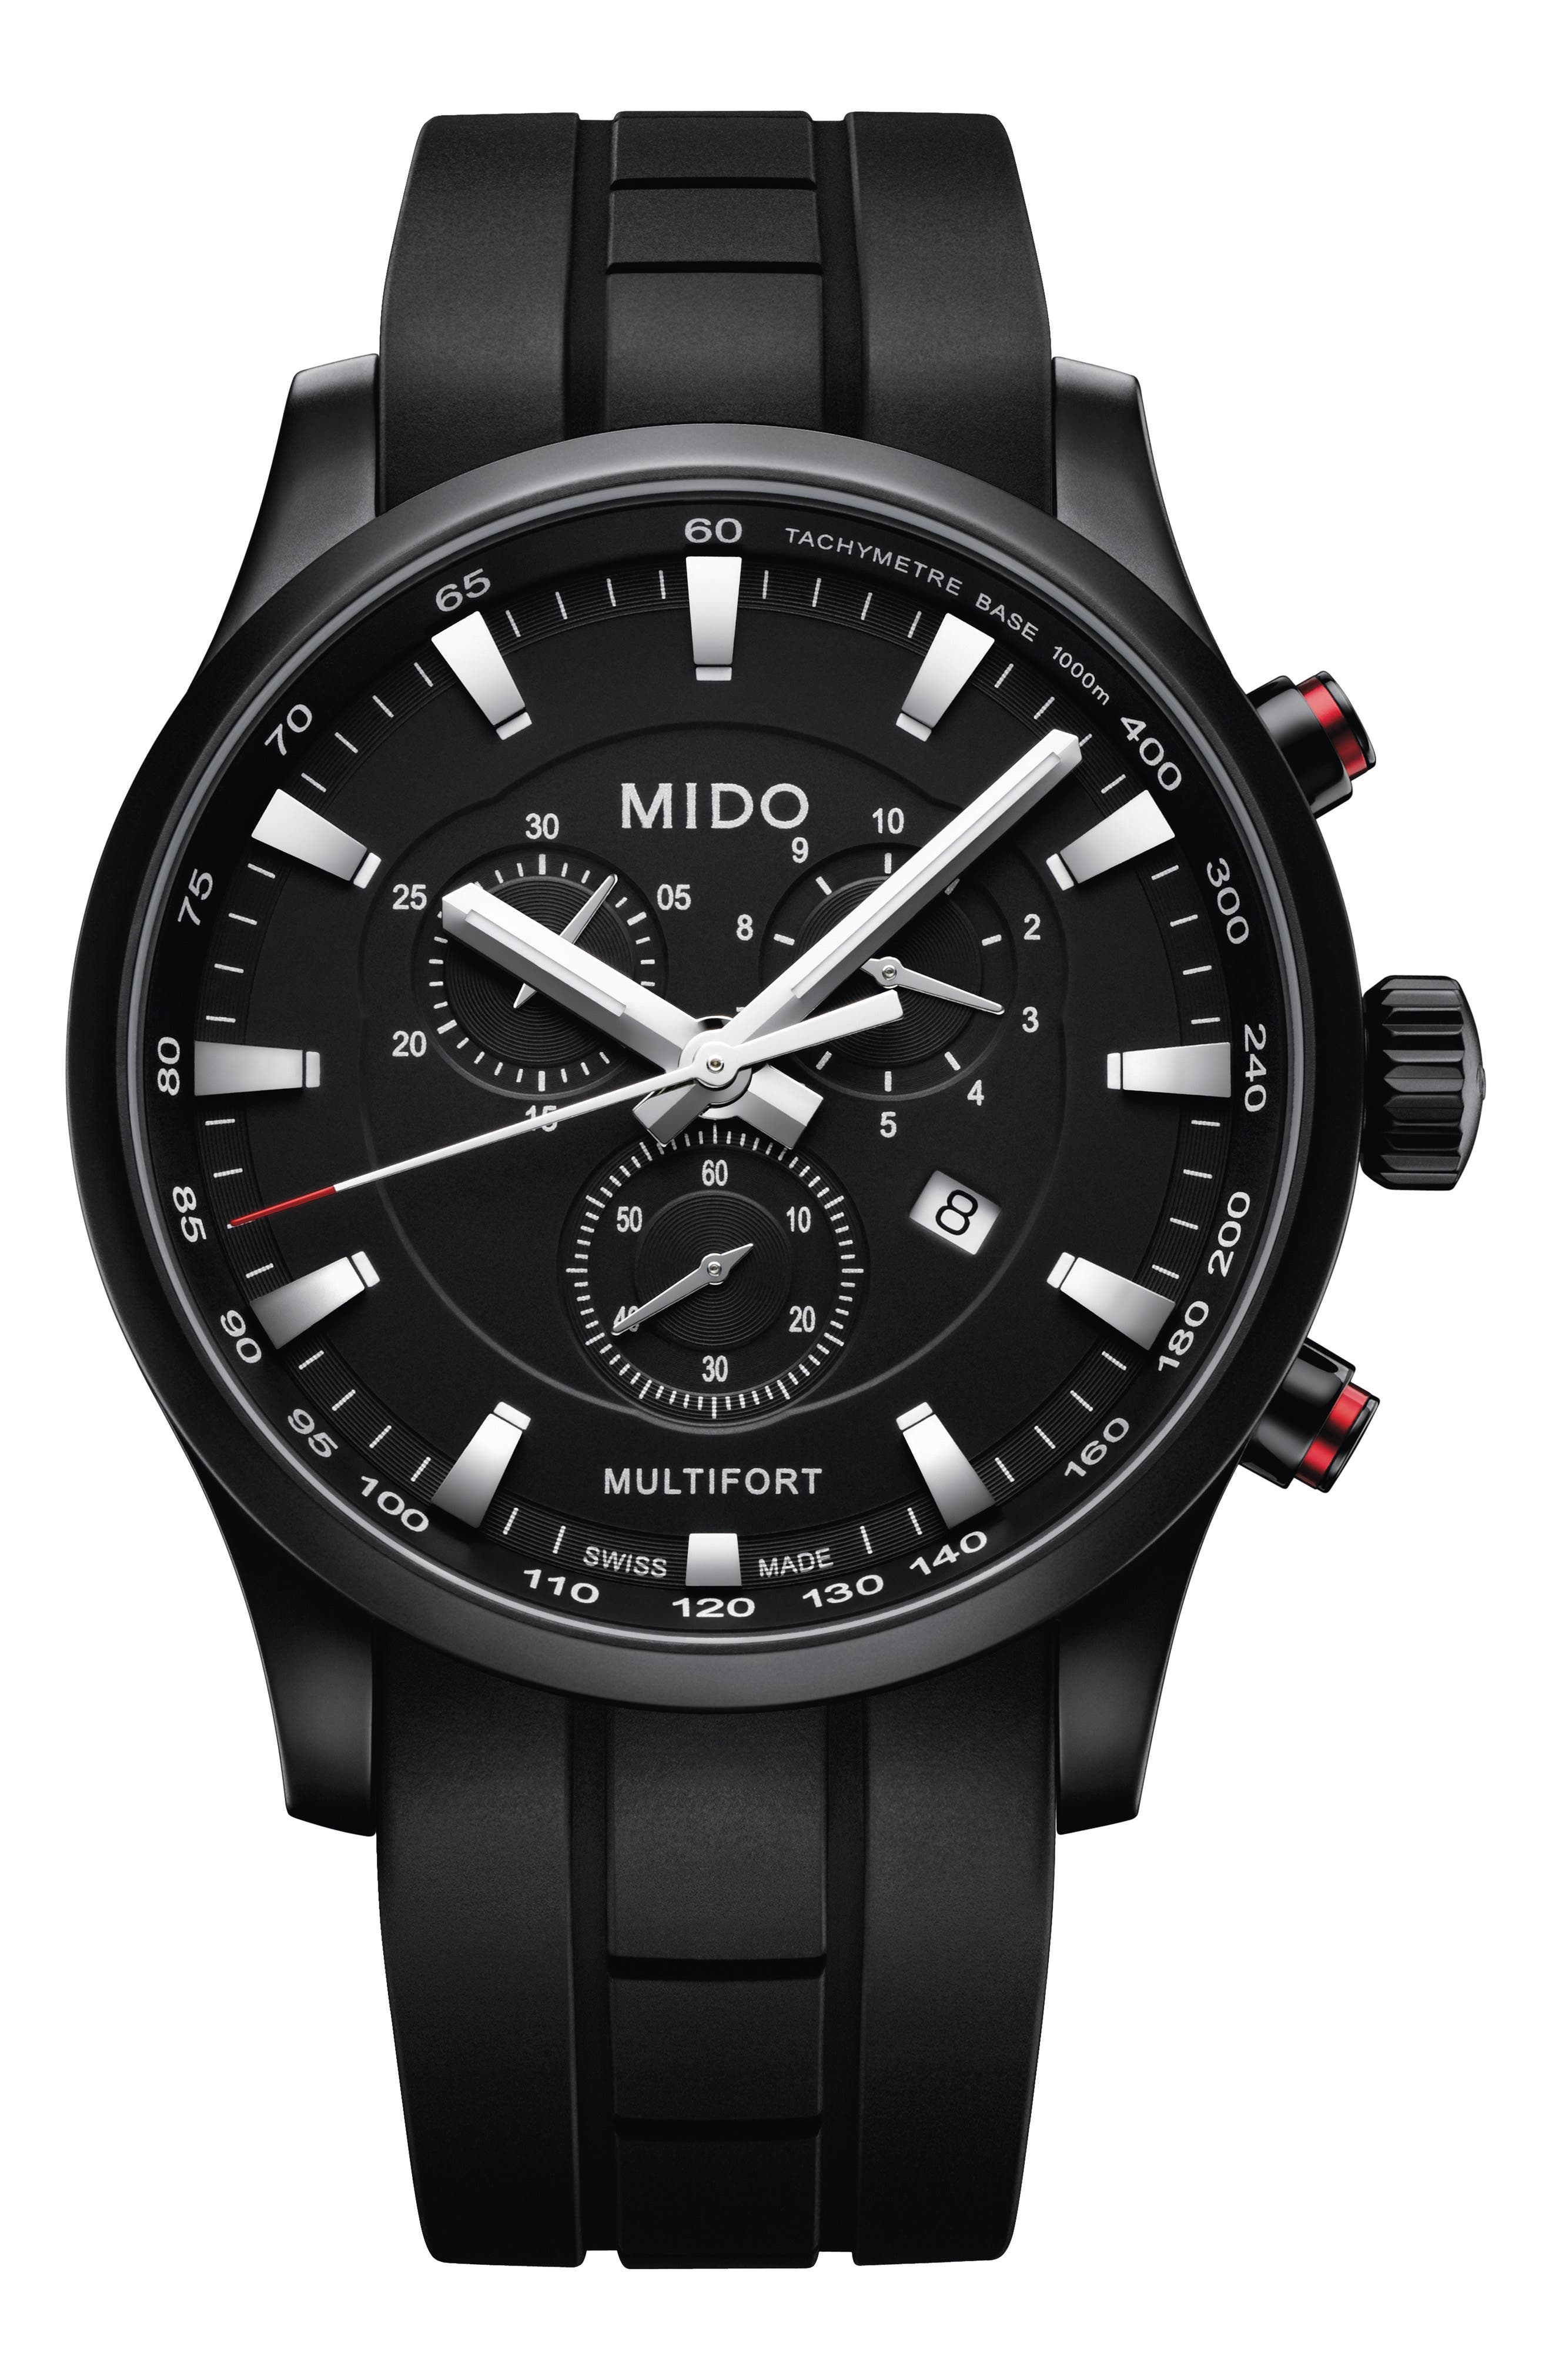 MIDO Multifort Chronograph Rubber Strap Watch in Black/ Silver